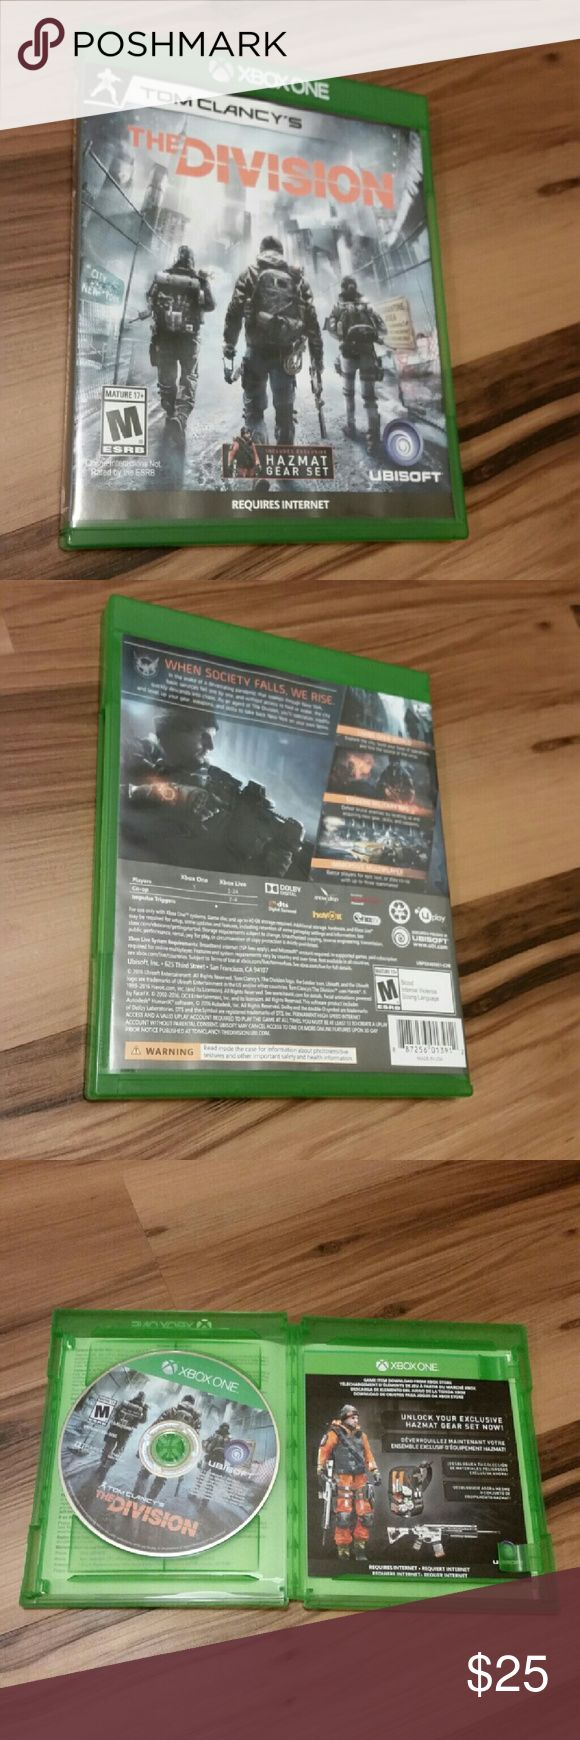 The Division Xbox One Game Like new.  All prices are negotiable. Make me an offer! ♡ Other